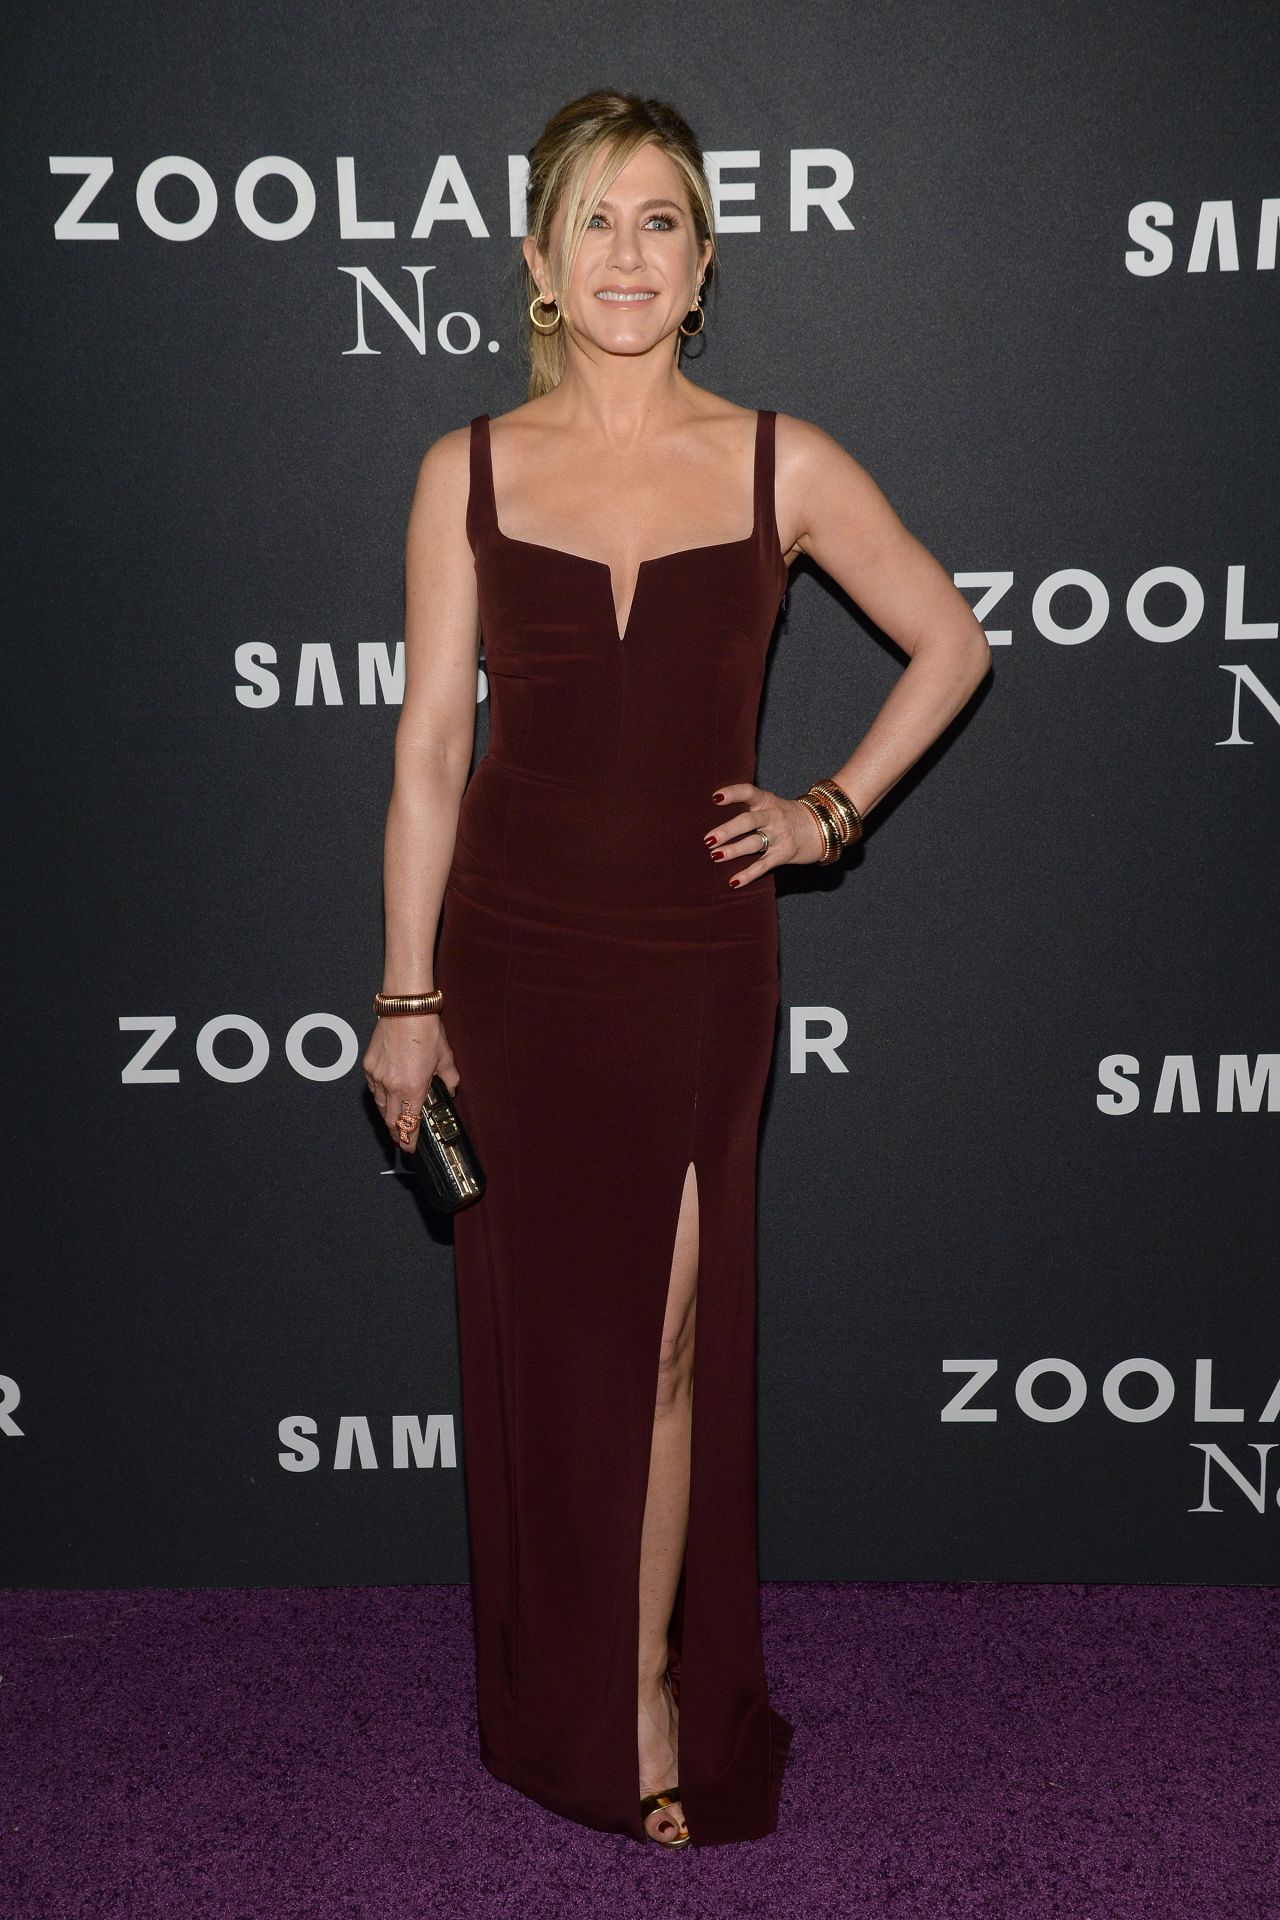 jennifer-aniston-zoolander-2-world-premiere-in-new-york-city-ny-1